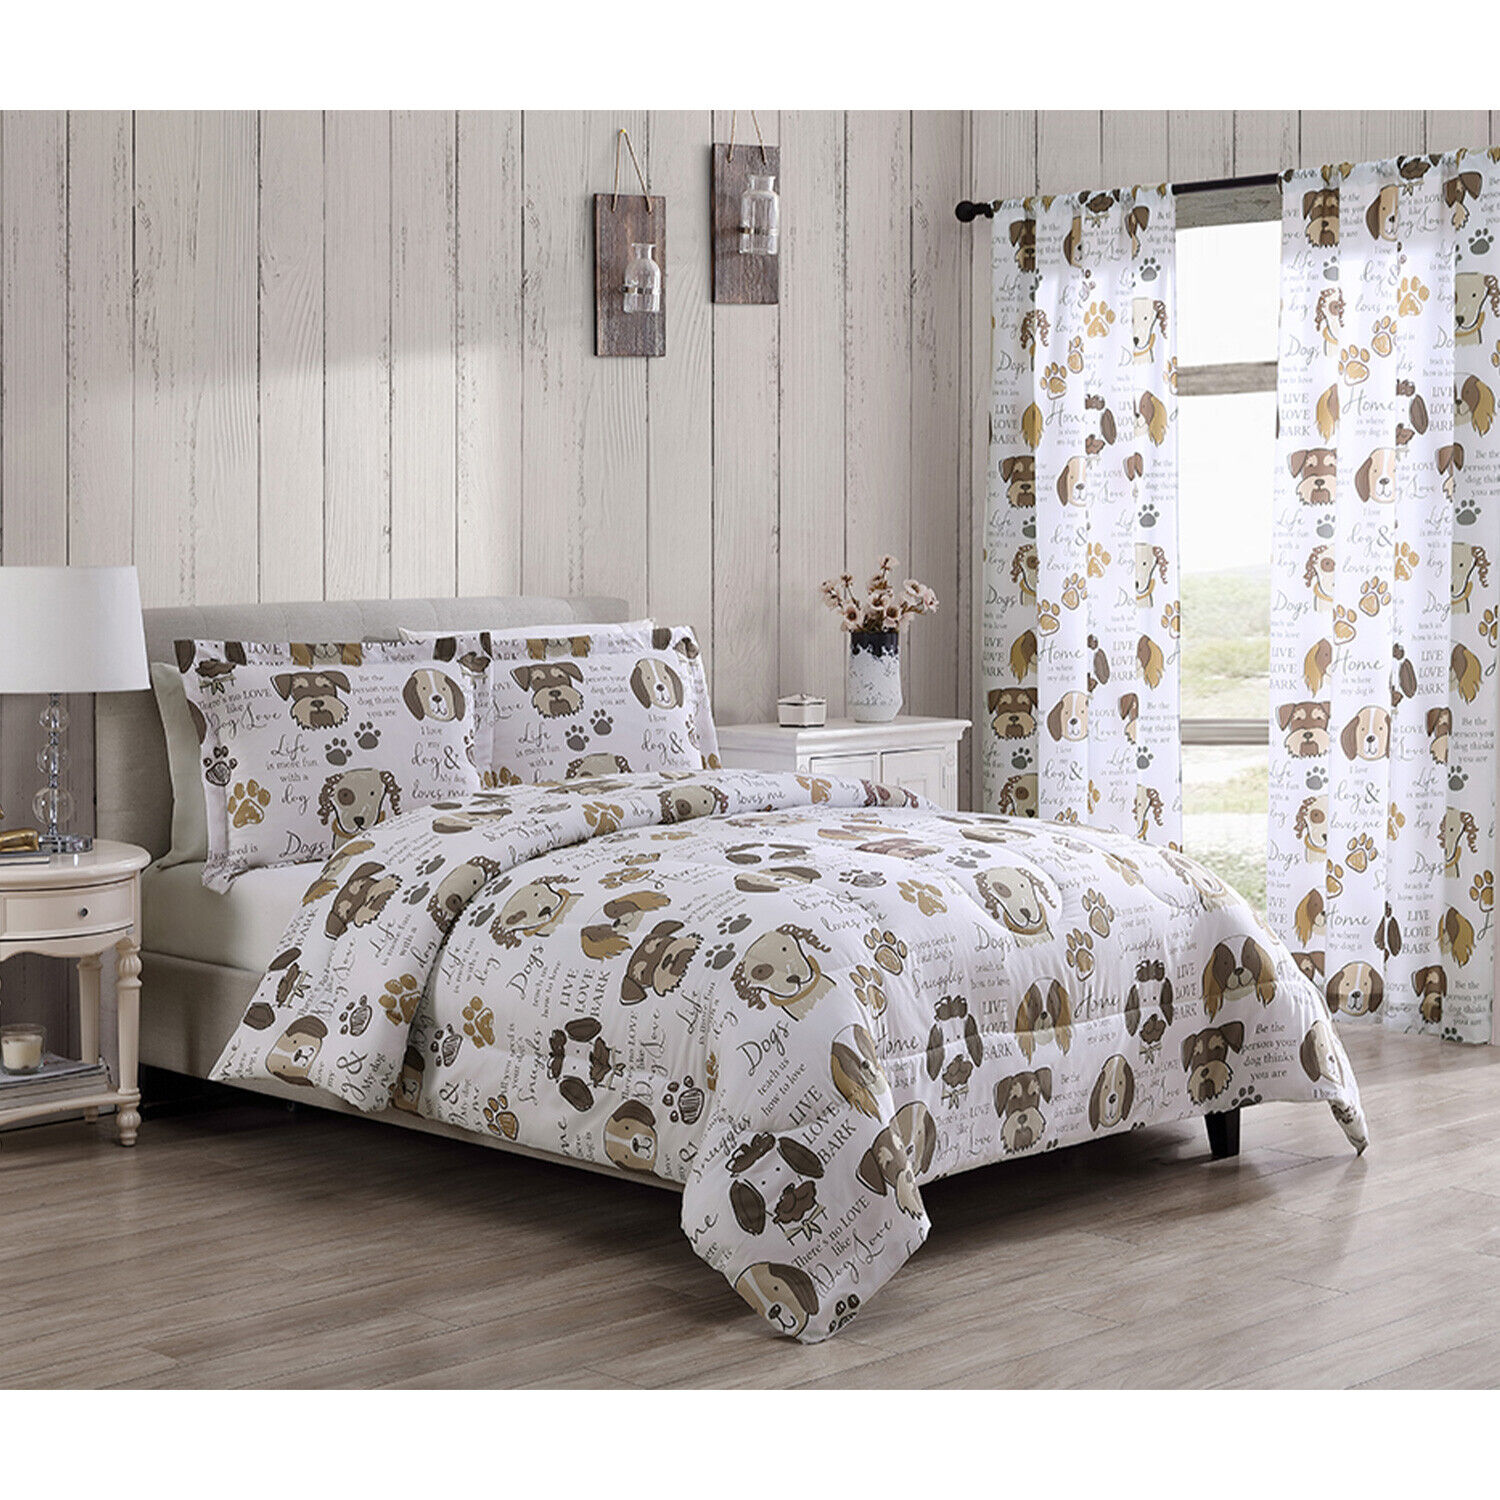 Twin, Full/Queen or King Dog Puppy Themed Pet Lover Comforter Bedding Set, Brown Bedding